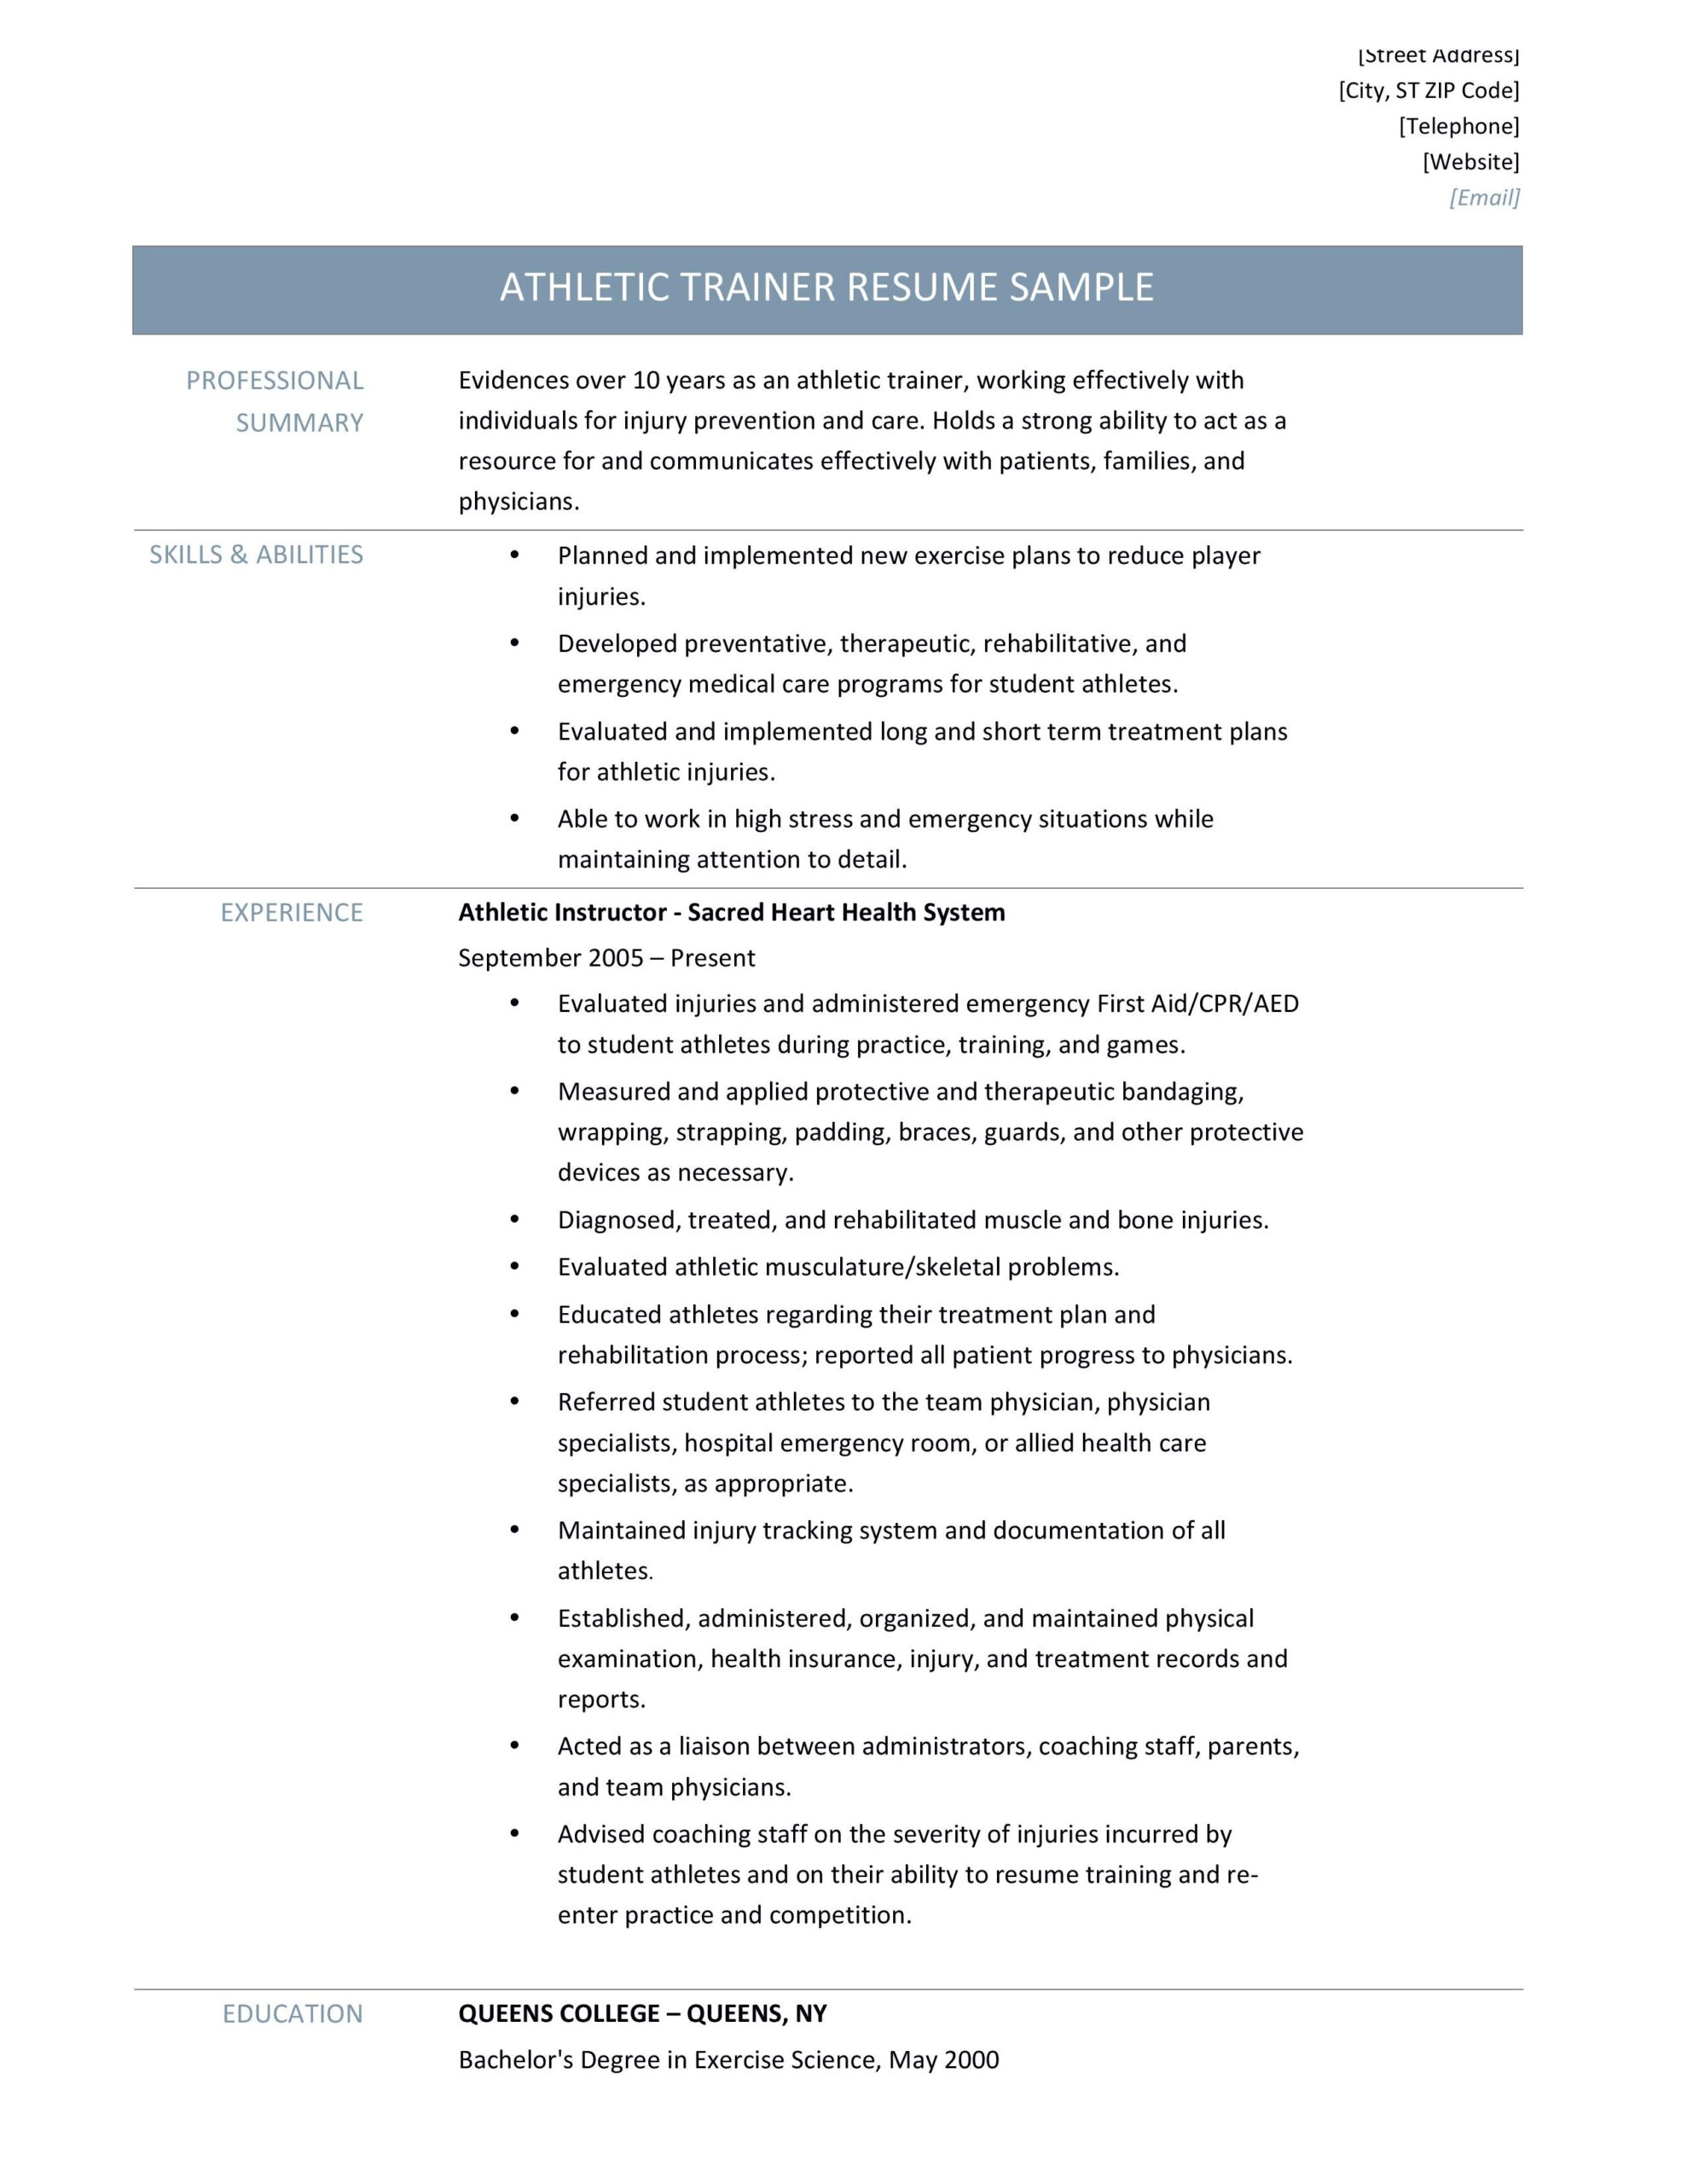 athletic trainer resume samples tips and templates by builders medium training student Resume Athletic Training Student Resume